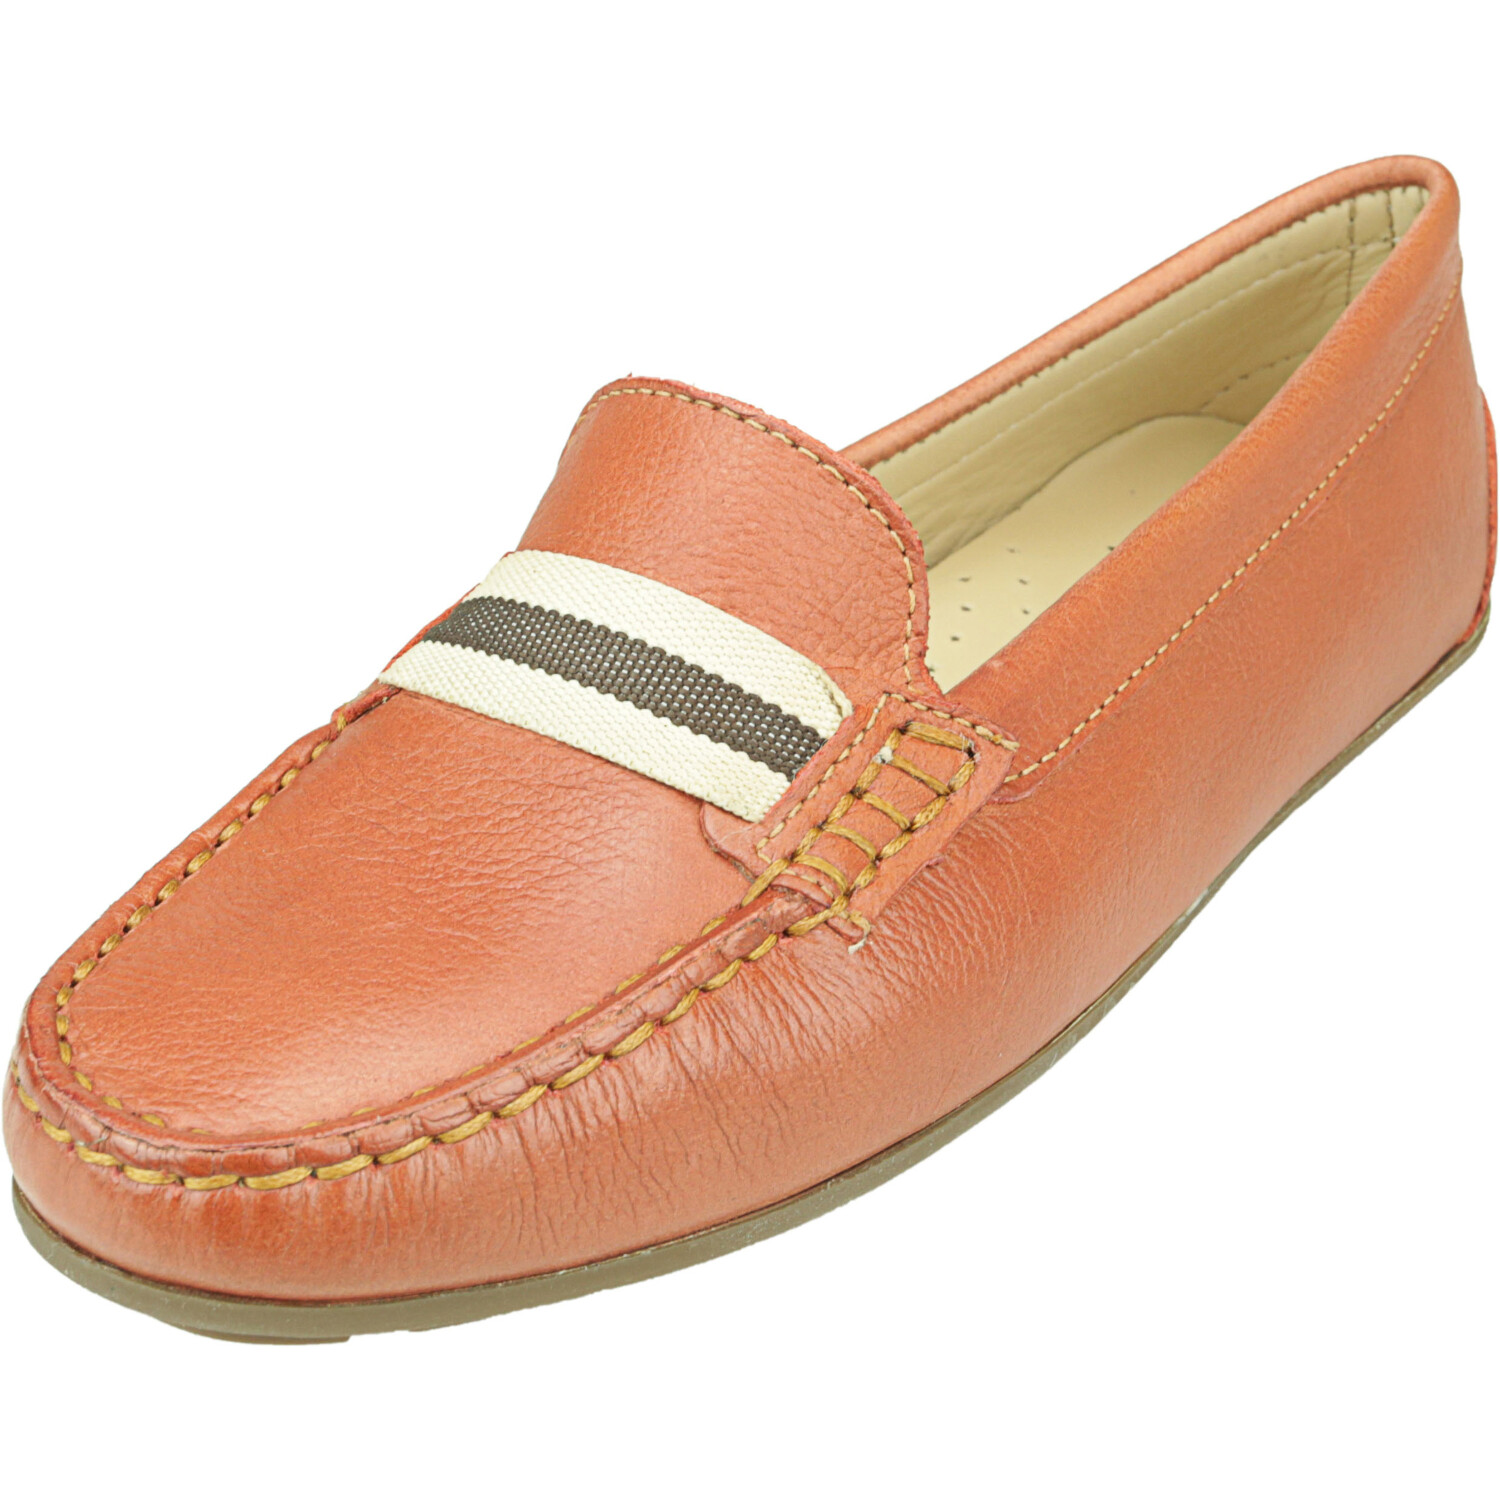 Driver Club Usa Women's Mulberry 2 Orange Everest Ankle-High Leather Loafers & Slip-On - 5M